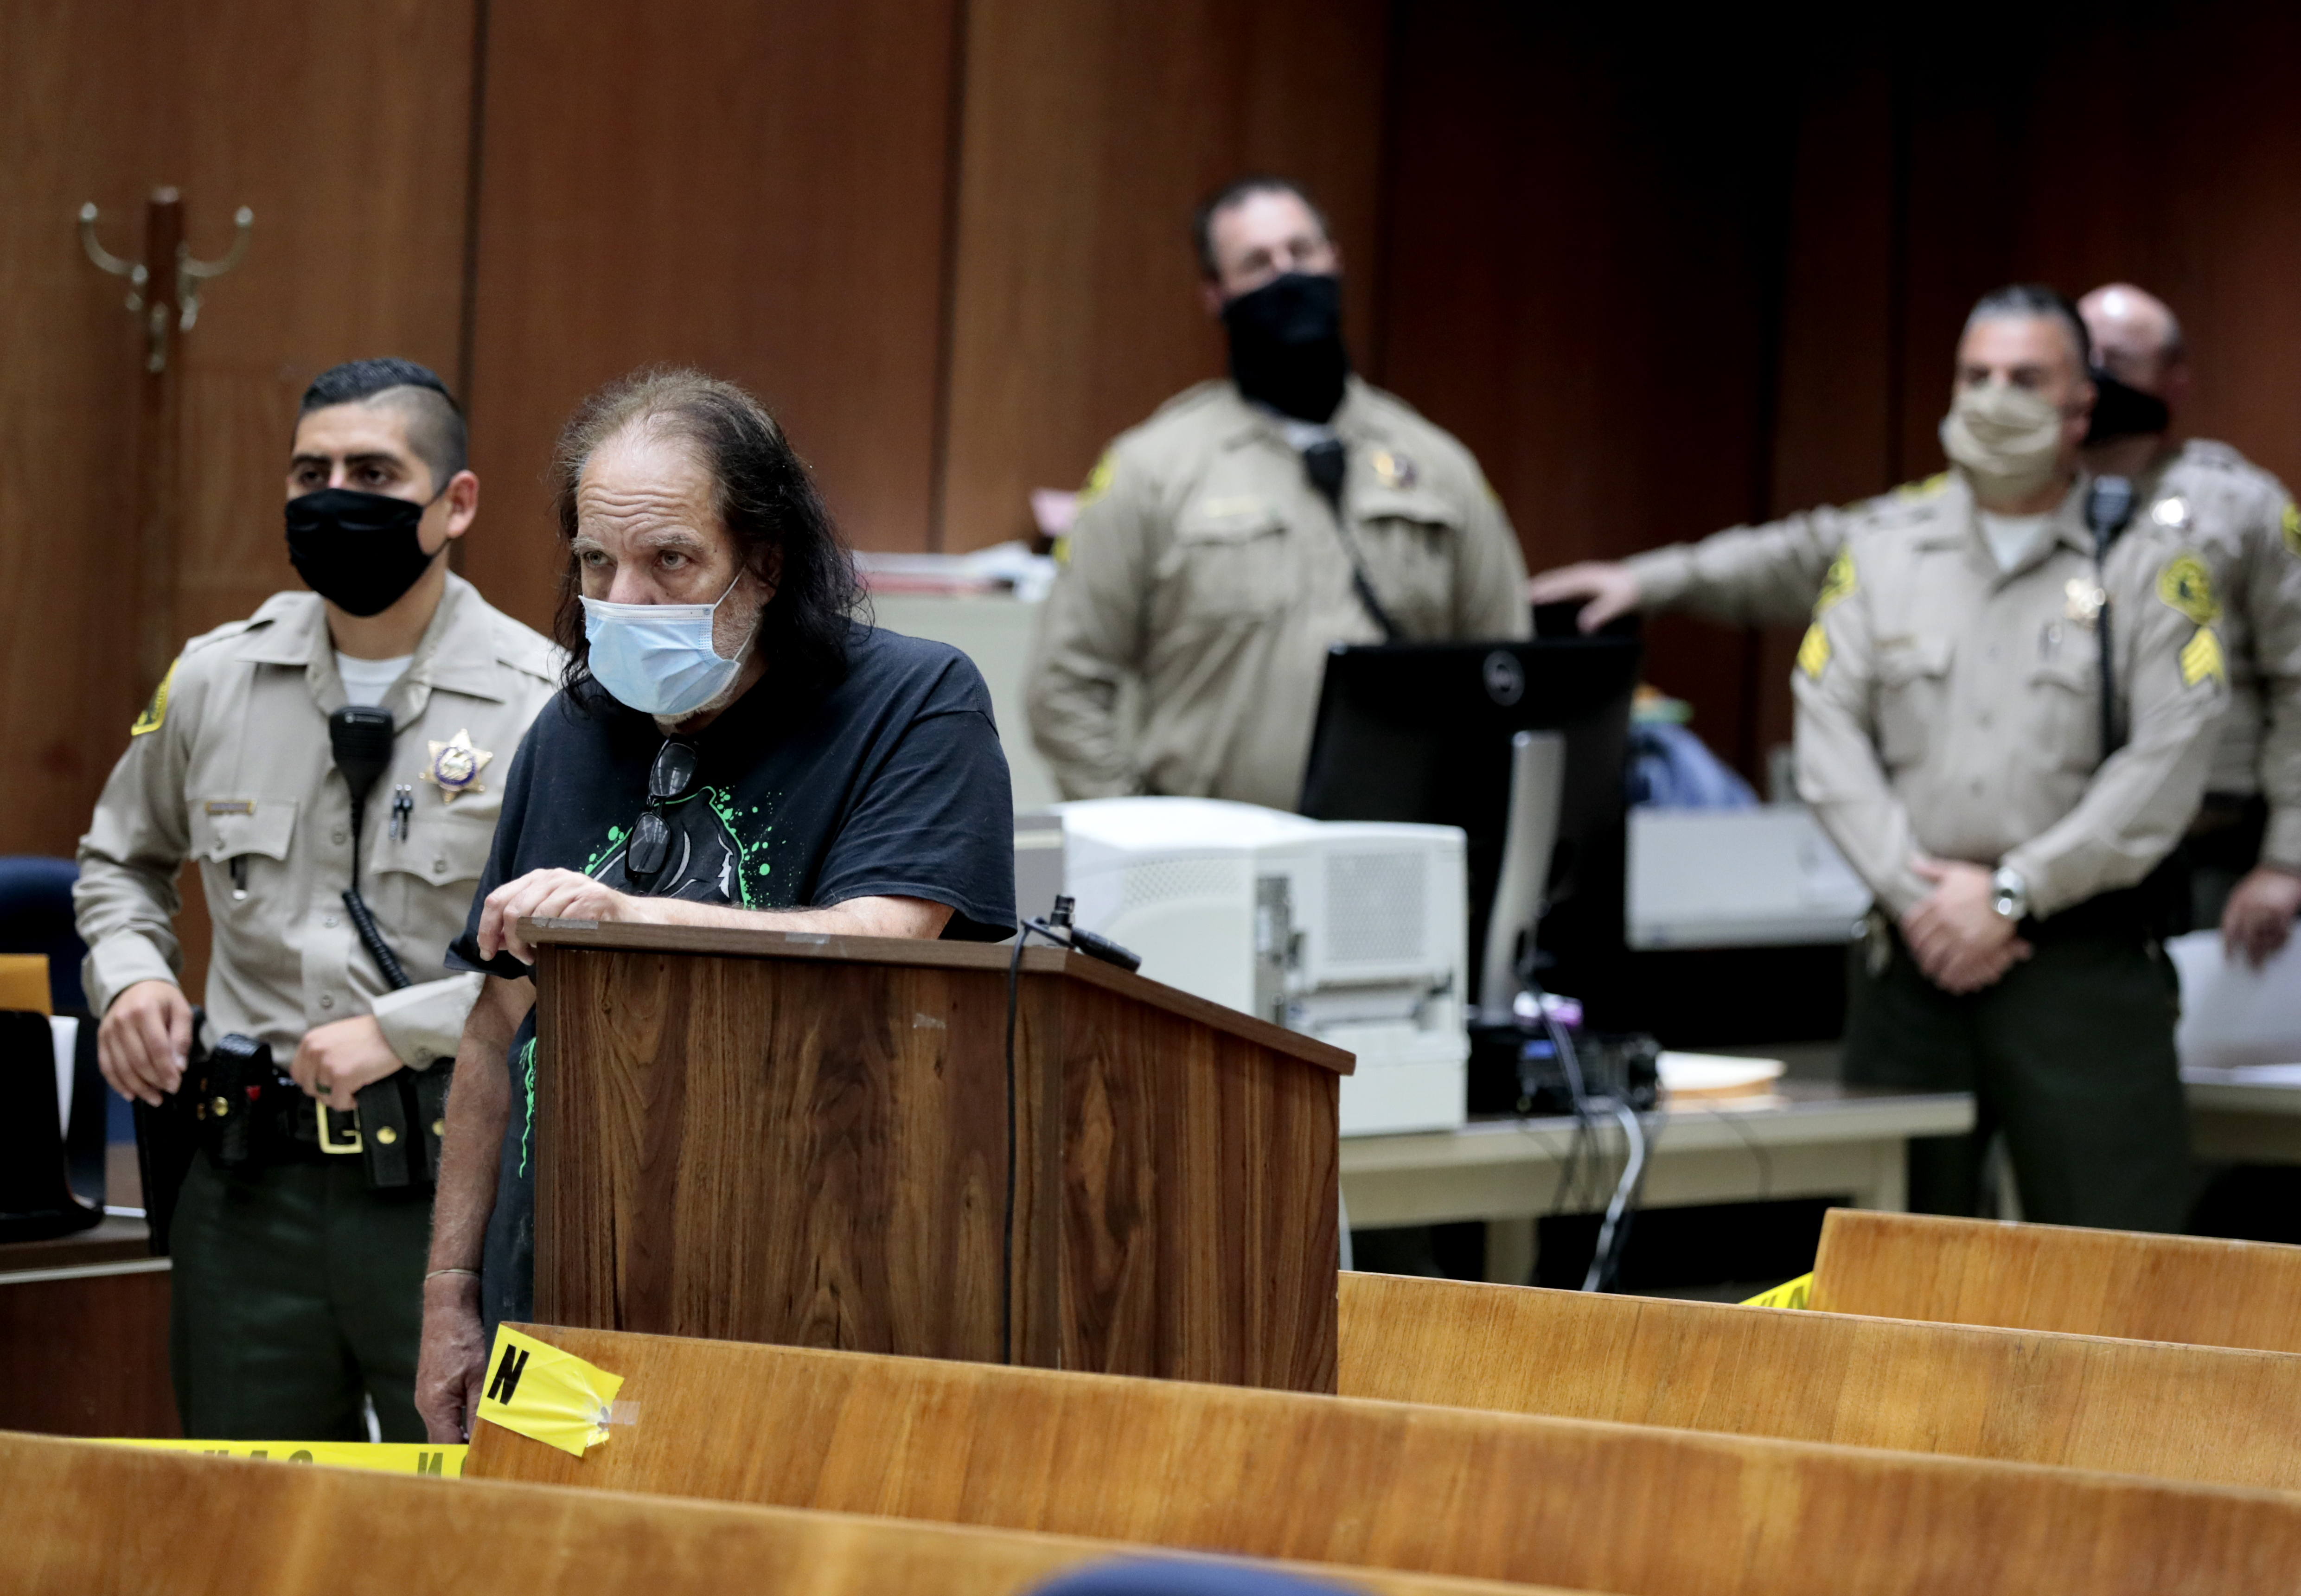 Adult film star Ron Jeremy, second from left, makes his first court appearance Tuesday, June 23, 2020, in Los Angeles. Los Angeles County prosecutors say Jeremy has been charged with raping three women and sexually assaulting a fourth. (Robert Gauthier/Los Angeles Times via AP, Pool)